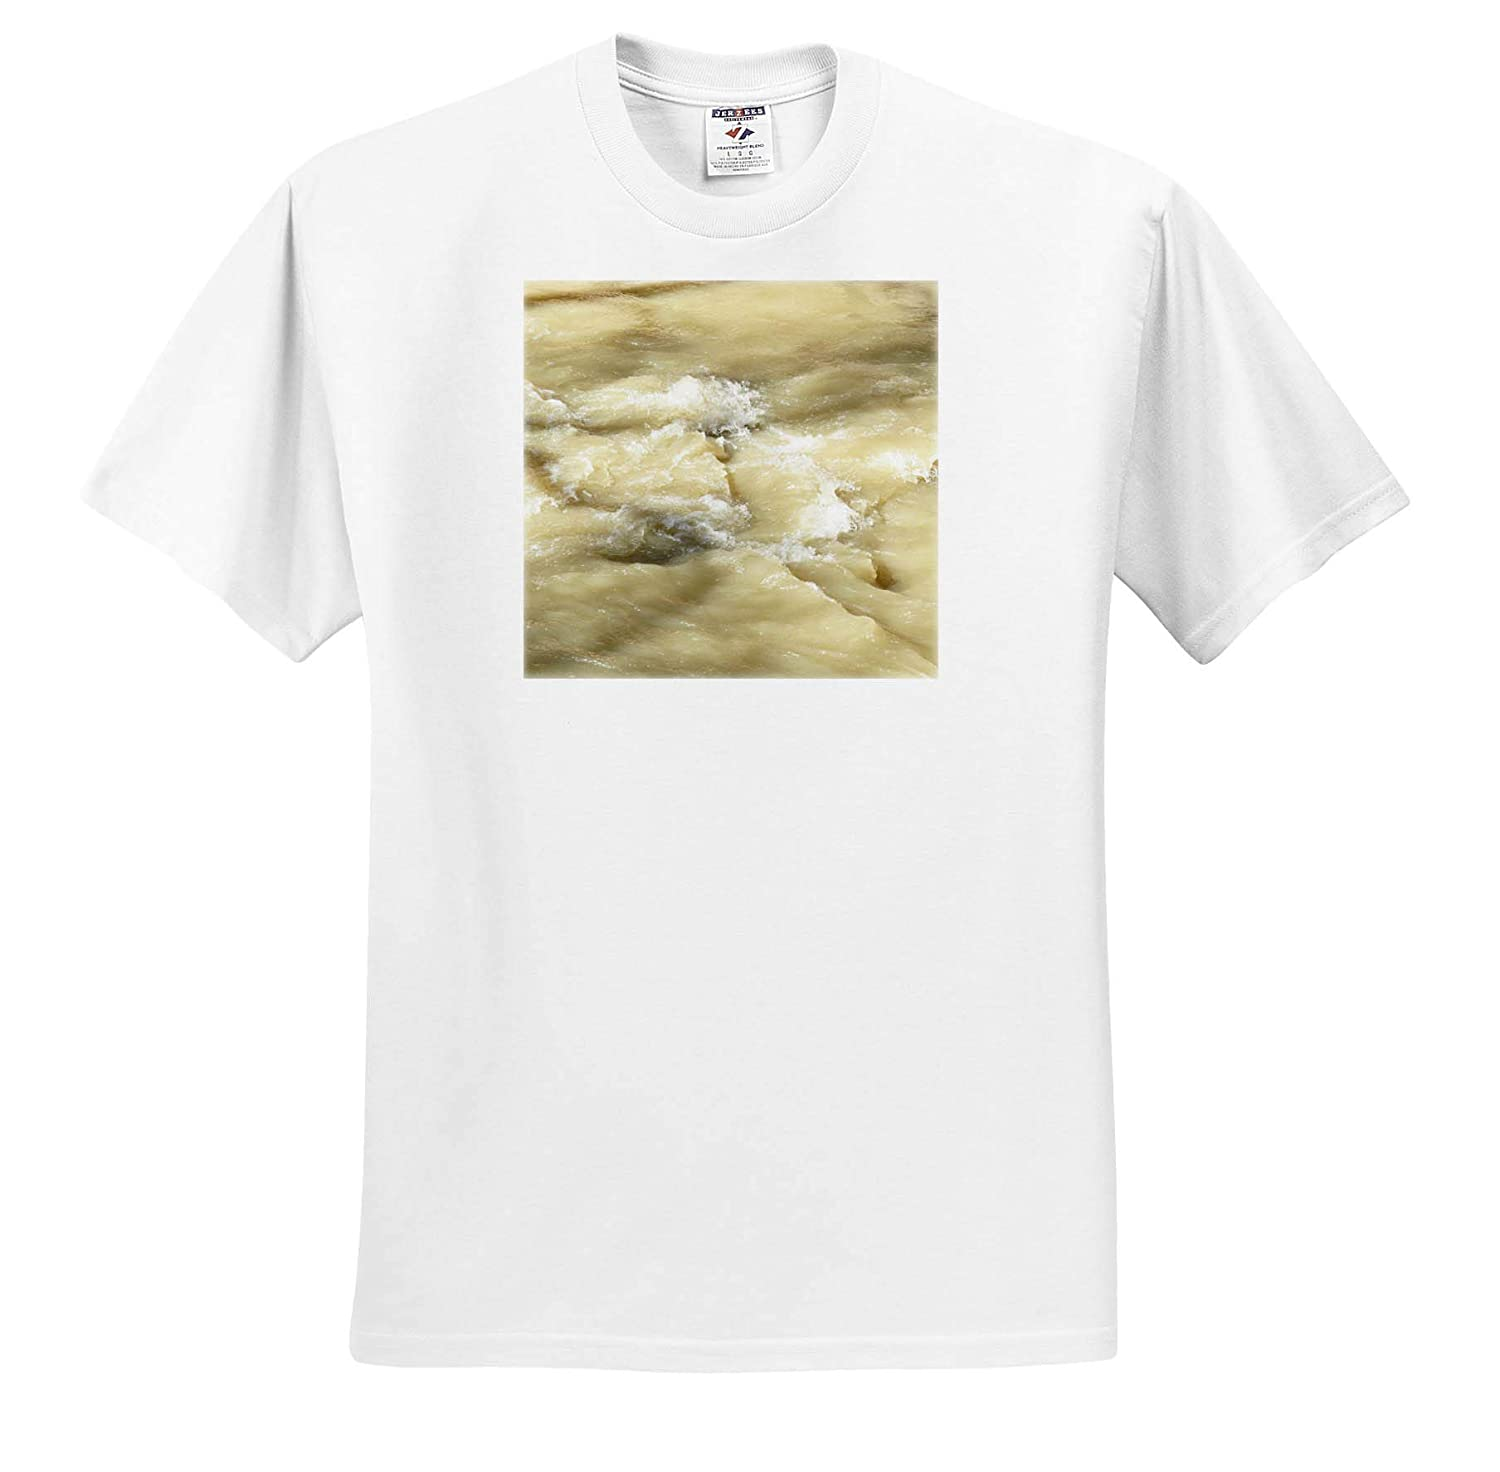 The Rushing Water in The Creek in a Muddy Color 3dRose Jos Fauxtographee- Stream Adult T-Shirt XL ts/_318883